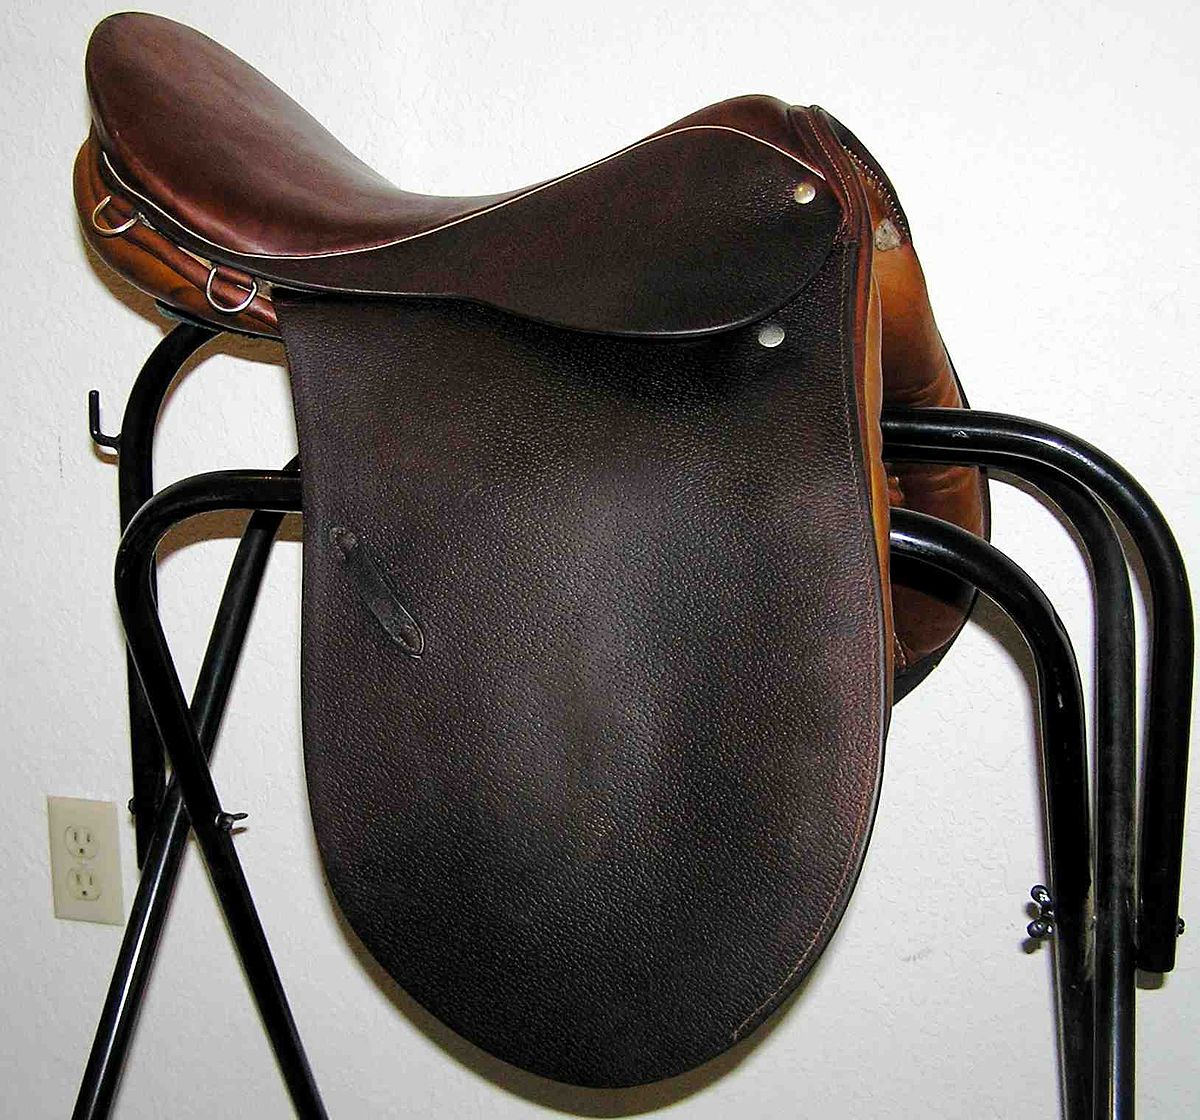 Saddle - Wikipedia